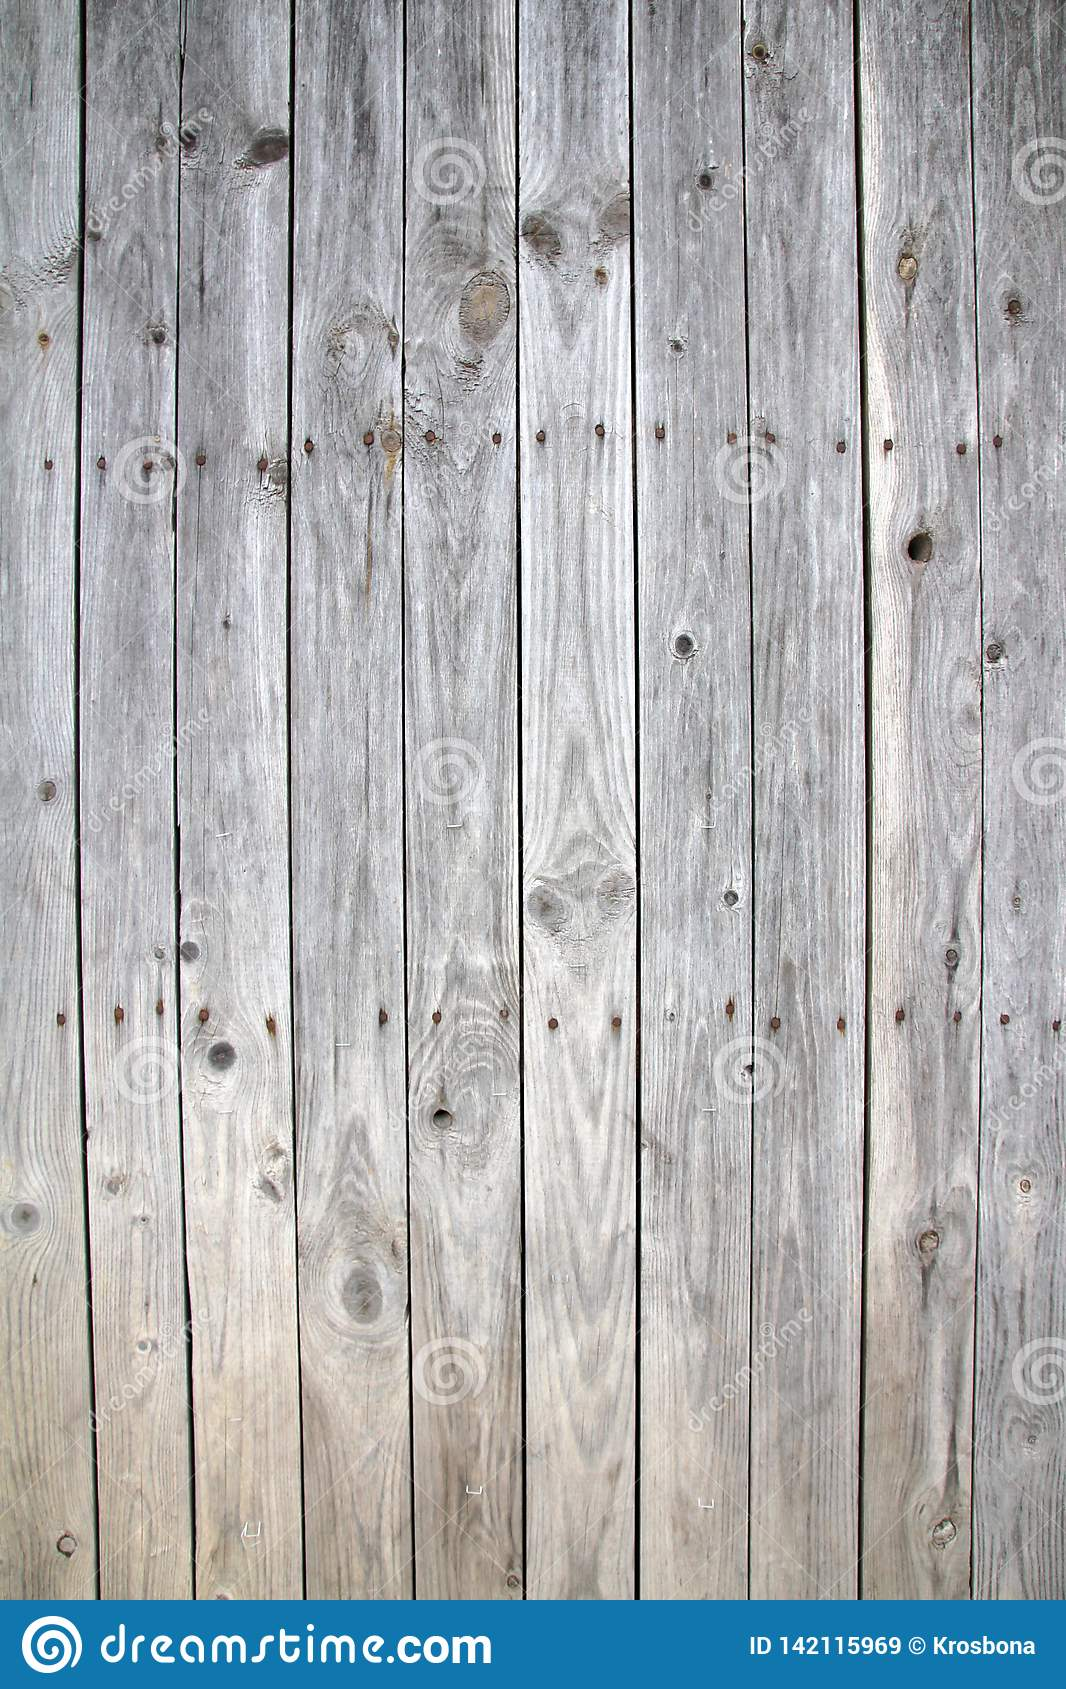 Natural wood plank backgrounds